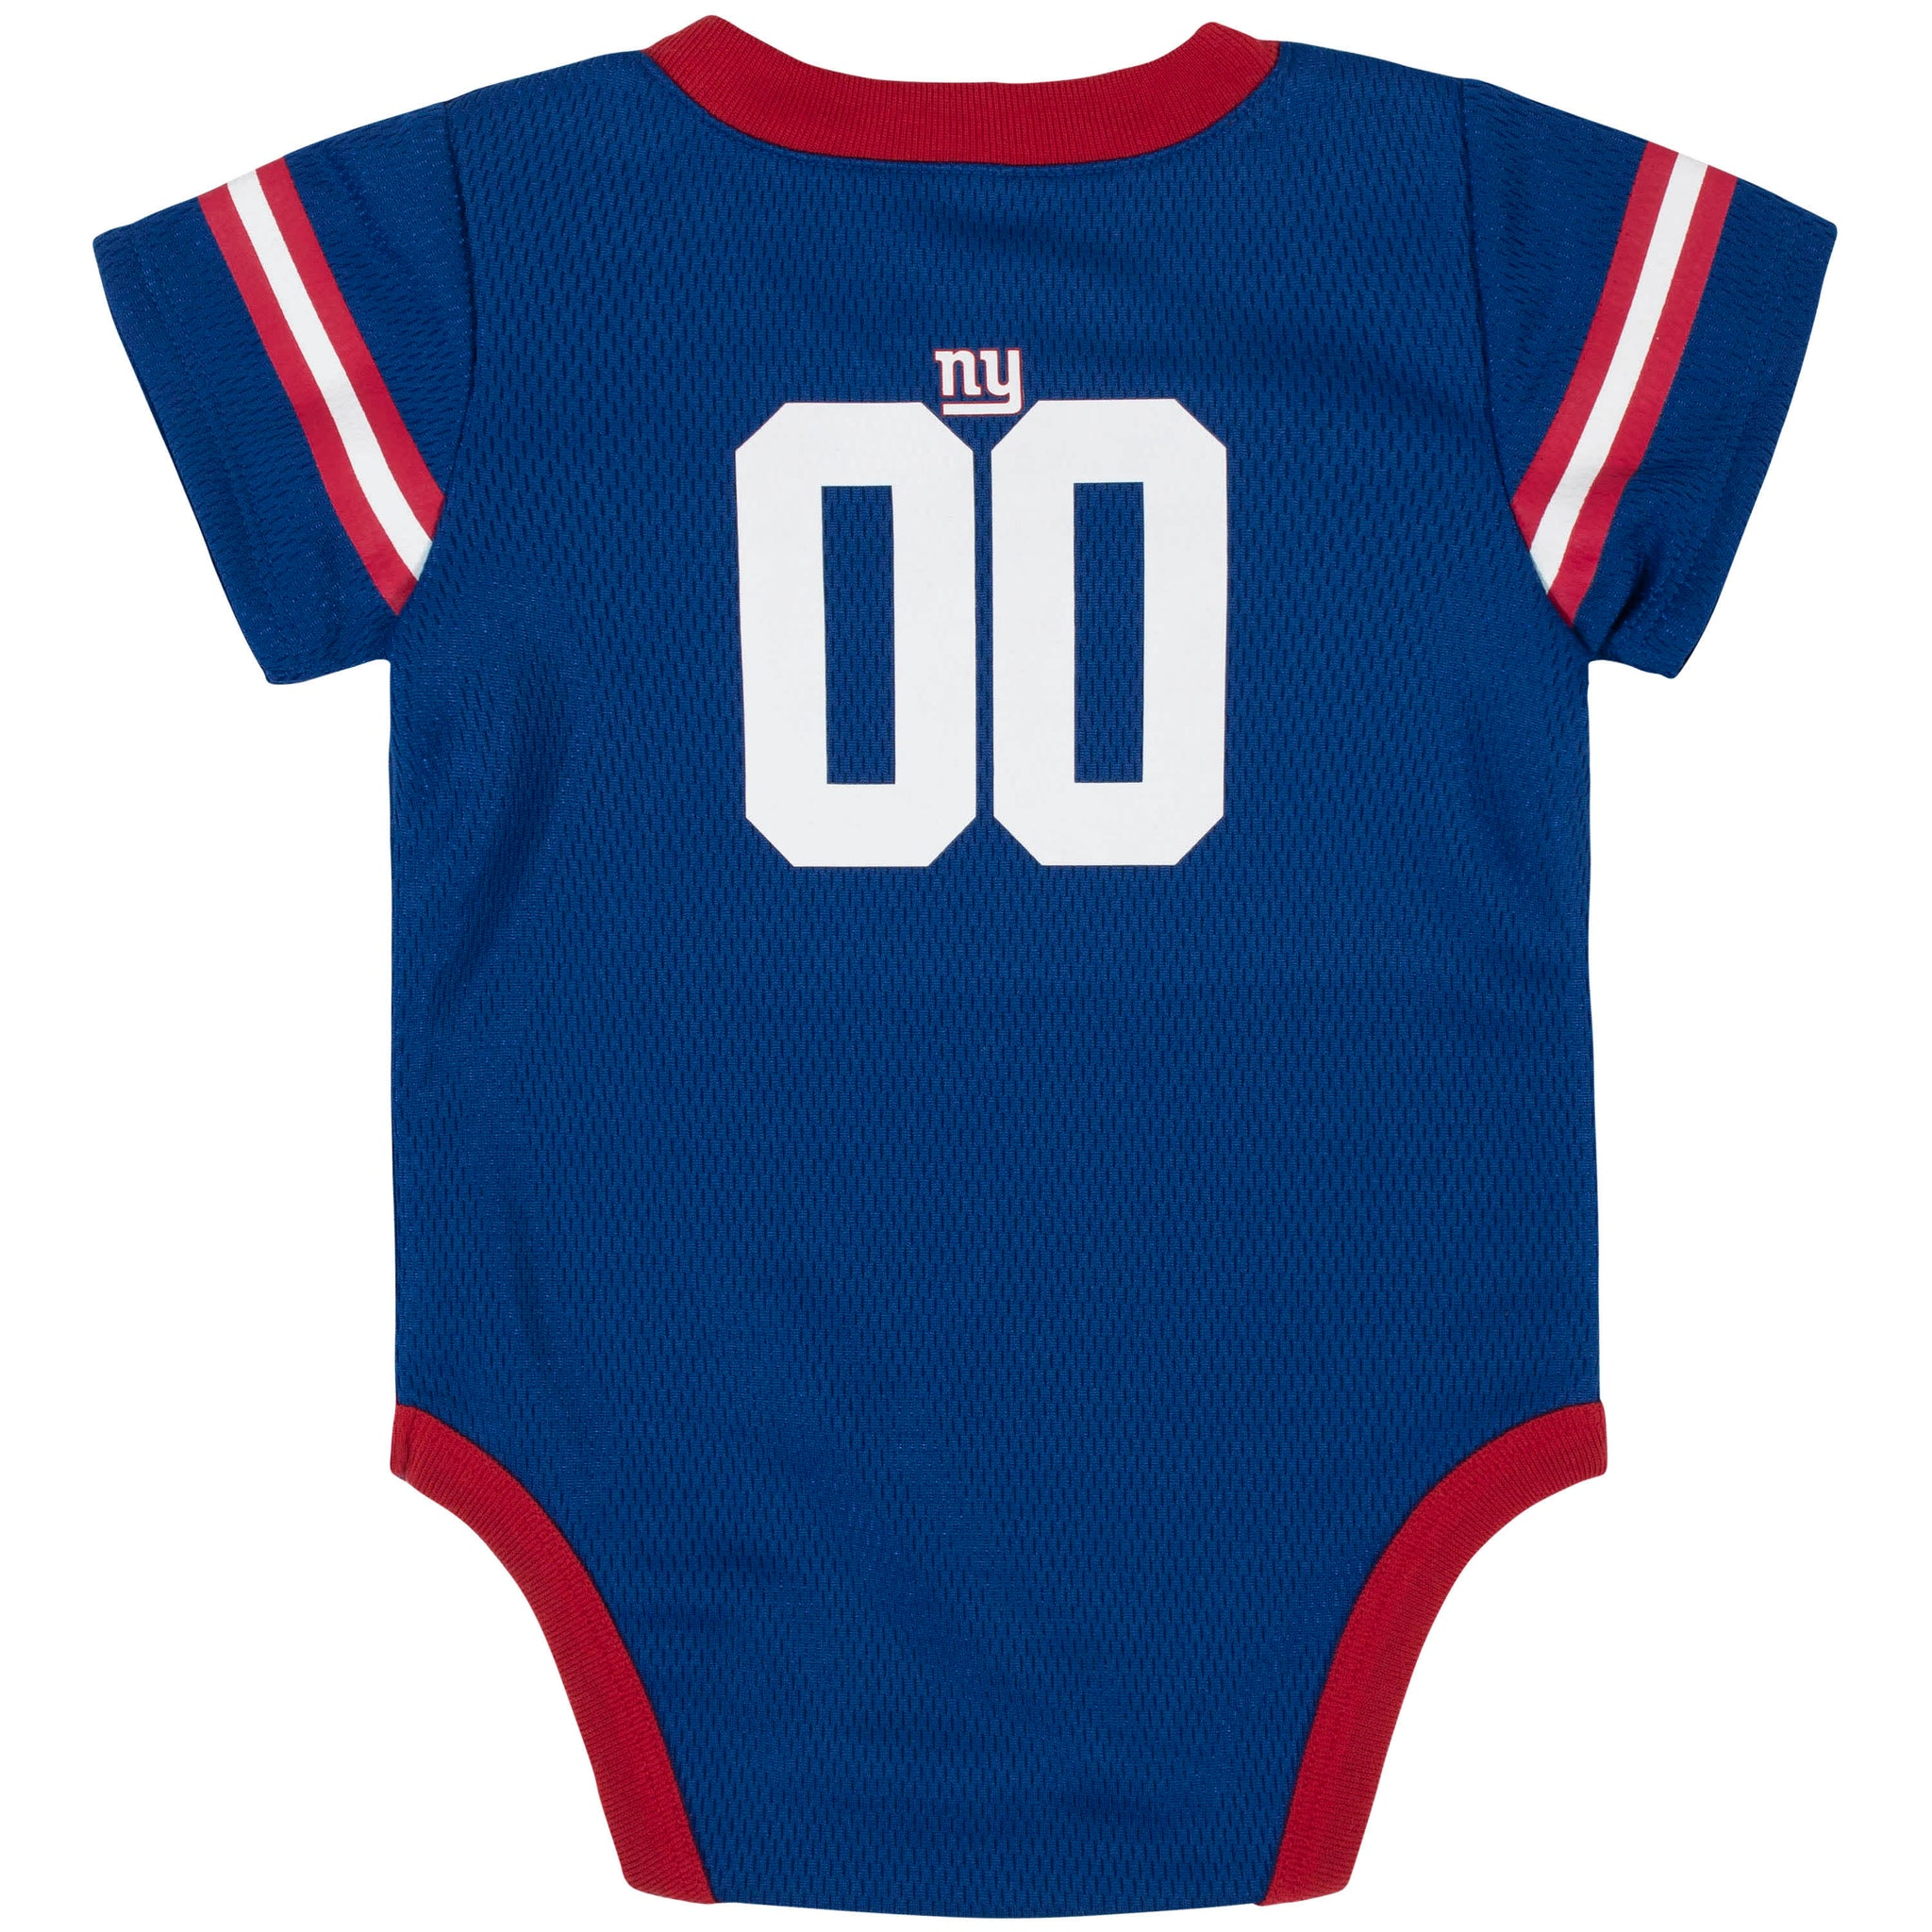 New York Giants Baby Boys Bodysuit